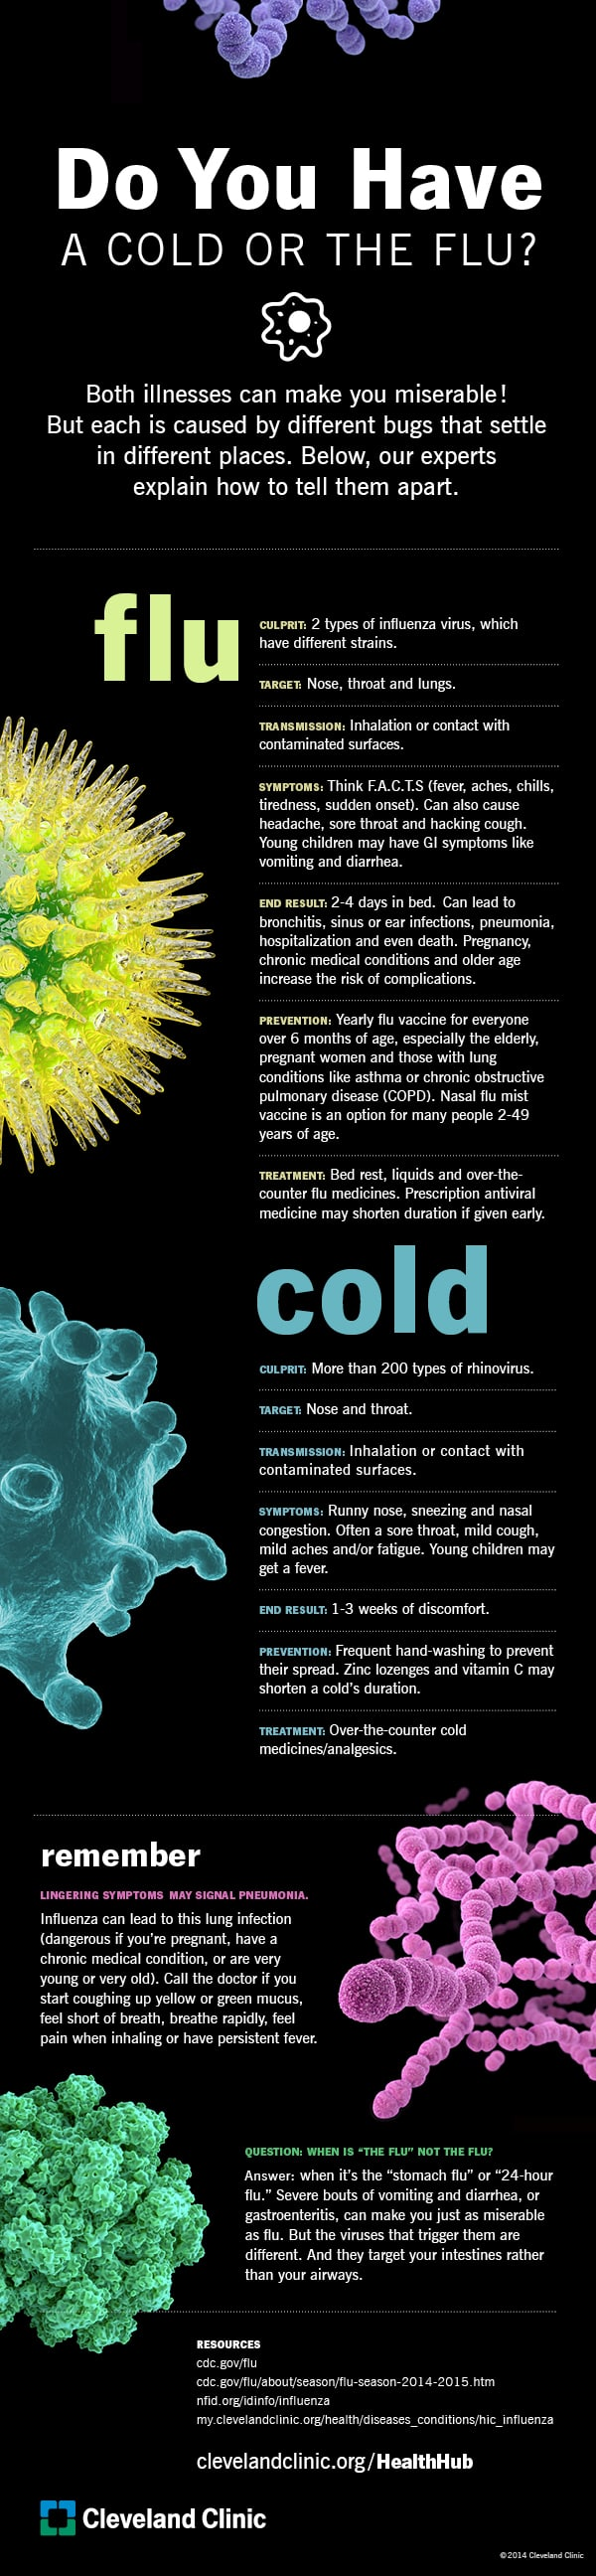 Do You Have A Cold Or The Flu